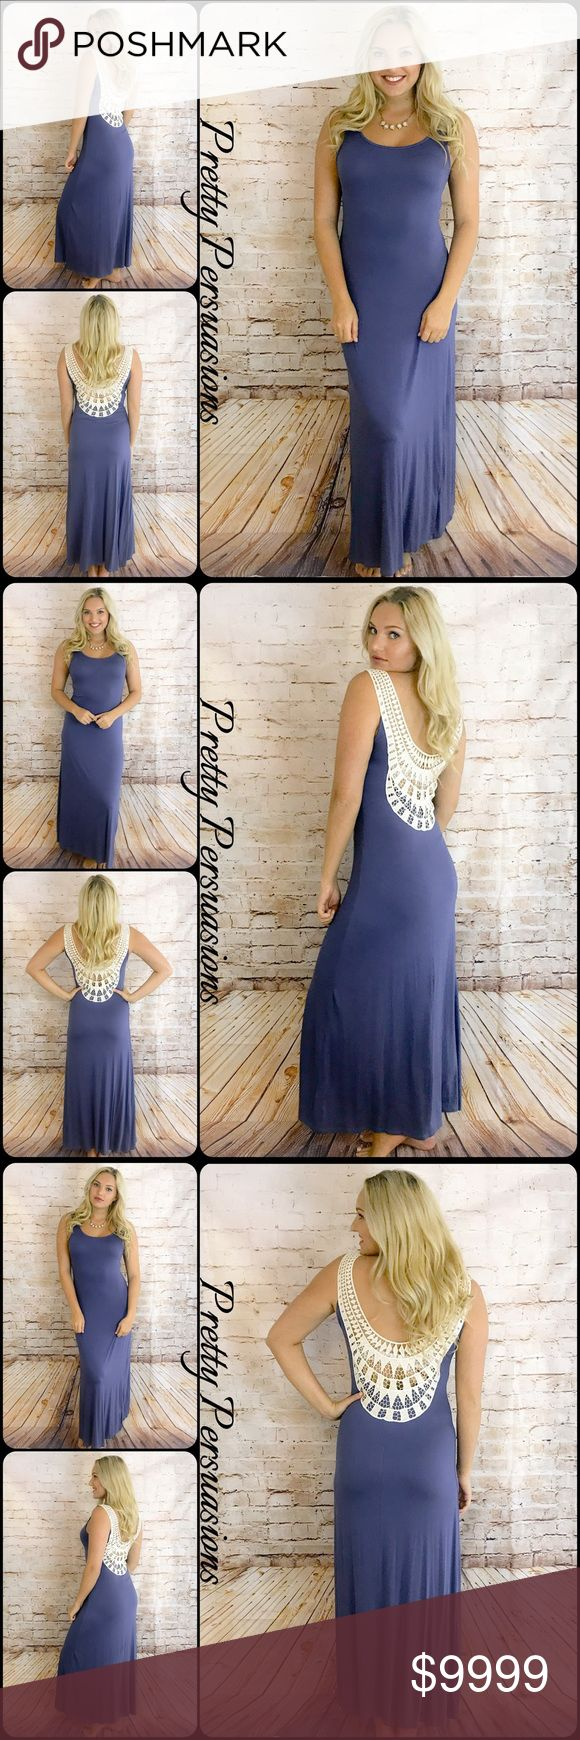 """NWT Indigo Crochet Back Boho Maxi Dress Available in sizes S, M, L Measurements taken from a small Length: 58"""" Bust: 34"""" Waist: 30"""" **Measurements taken unstretched**  NOTE: Model is a size S/4 w/a 34D bust & is pictured modeling a S  Features • stunning crochet lace scoop back accent • scooped neckline • full length maxi • soft, breathable, jersey material w/stretch • easy, accommodating fit  Bundle discounts available No pp or trades  Item # 1/3JC2/P106200450ICD  crochet lace white jersey…"""